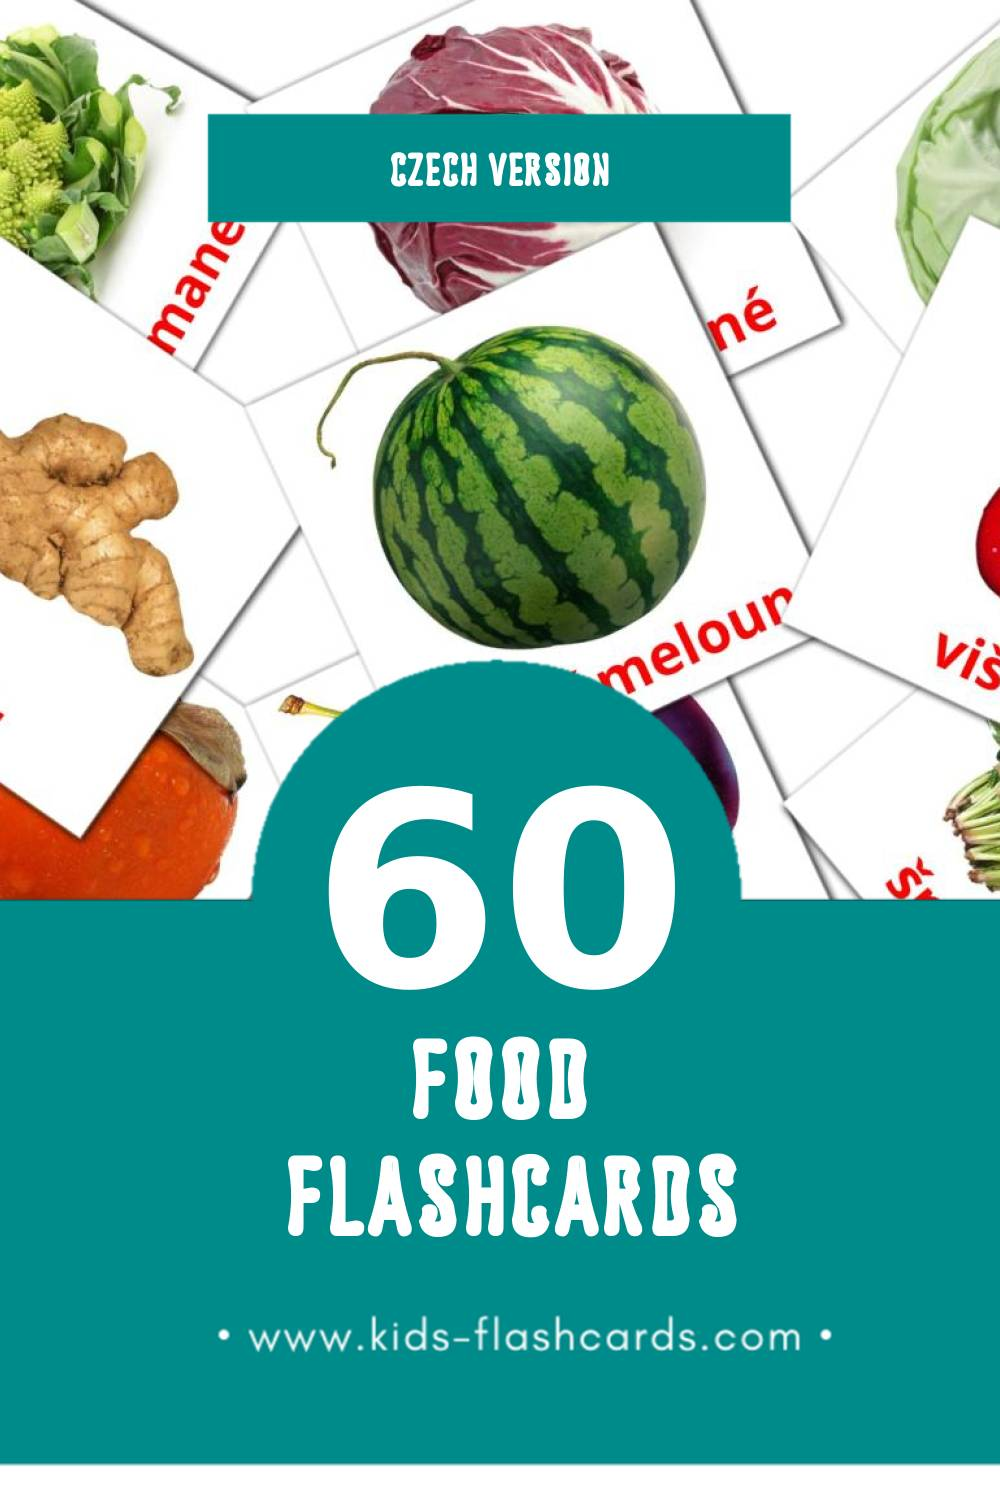 Visual Ягоды Flashcards for Toddlers (60 cards in Czech)